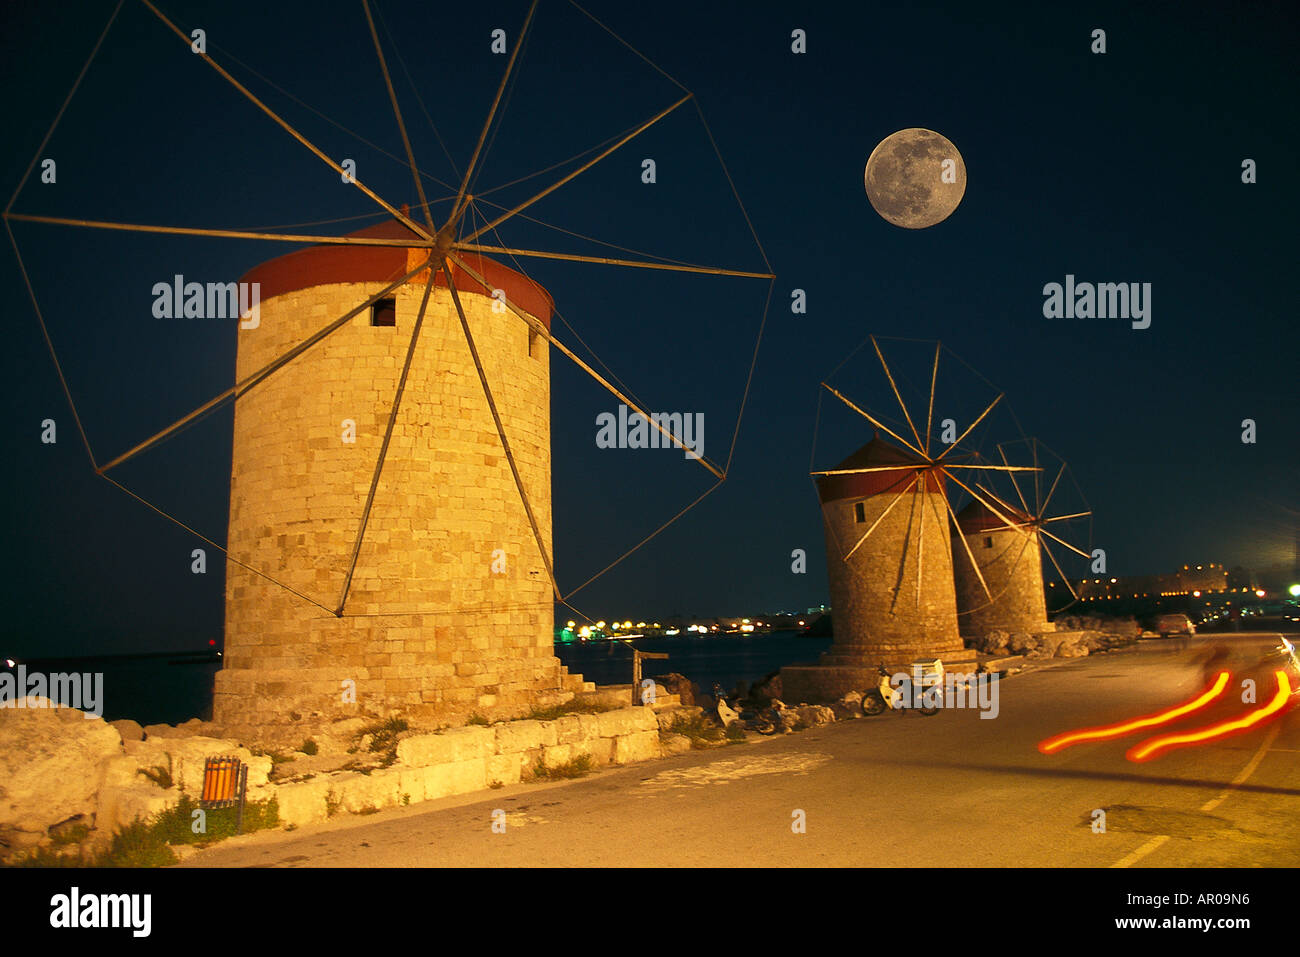 Rhodes windmills in the harbour at night, Rhodos City, Mandraki, Aegean, Greece - Stock Image